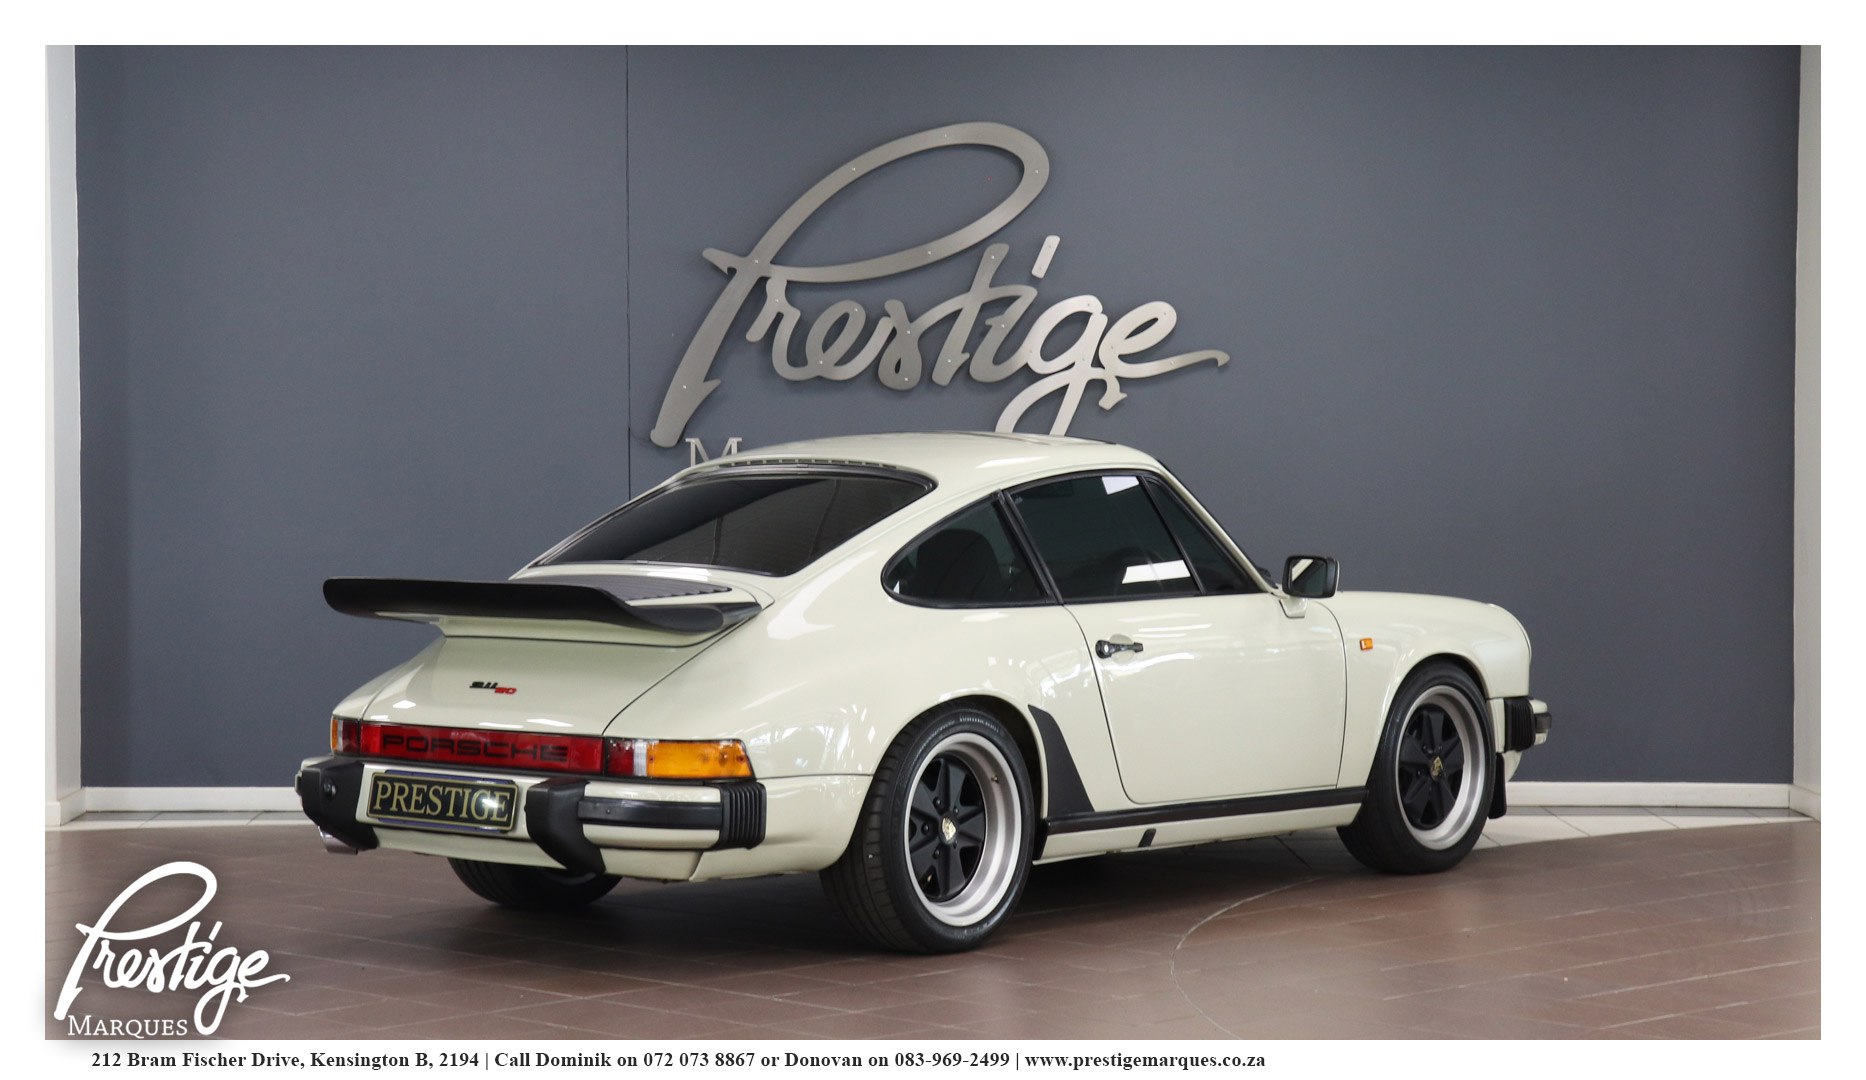 1982-Porsche-911-Carrera-20-Year-Anniversary-Tribute-Build-Prestige-Marques-Randburg-Sandton-3